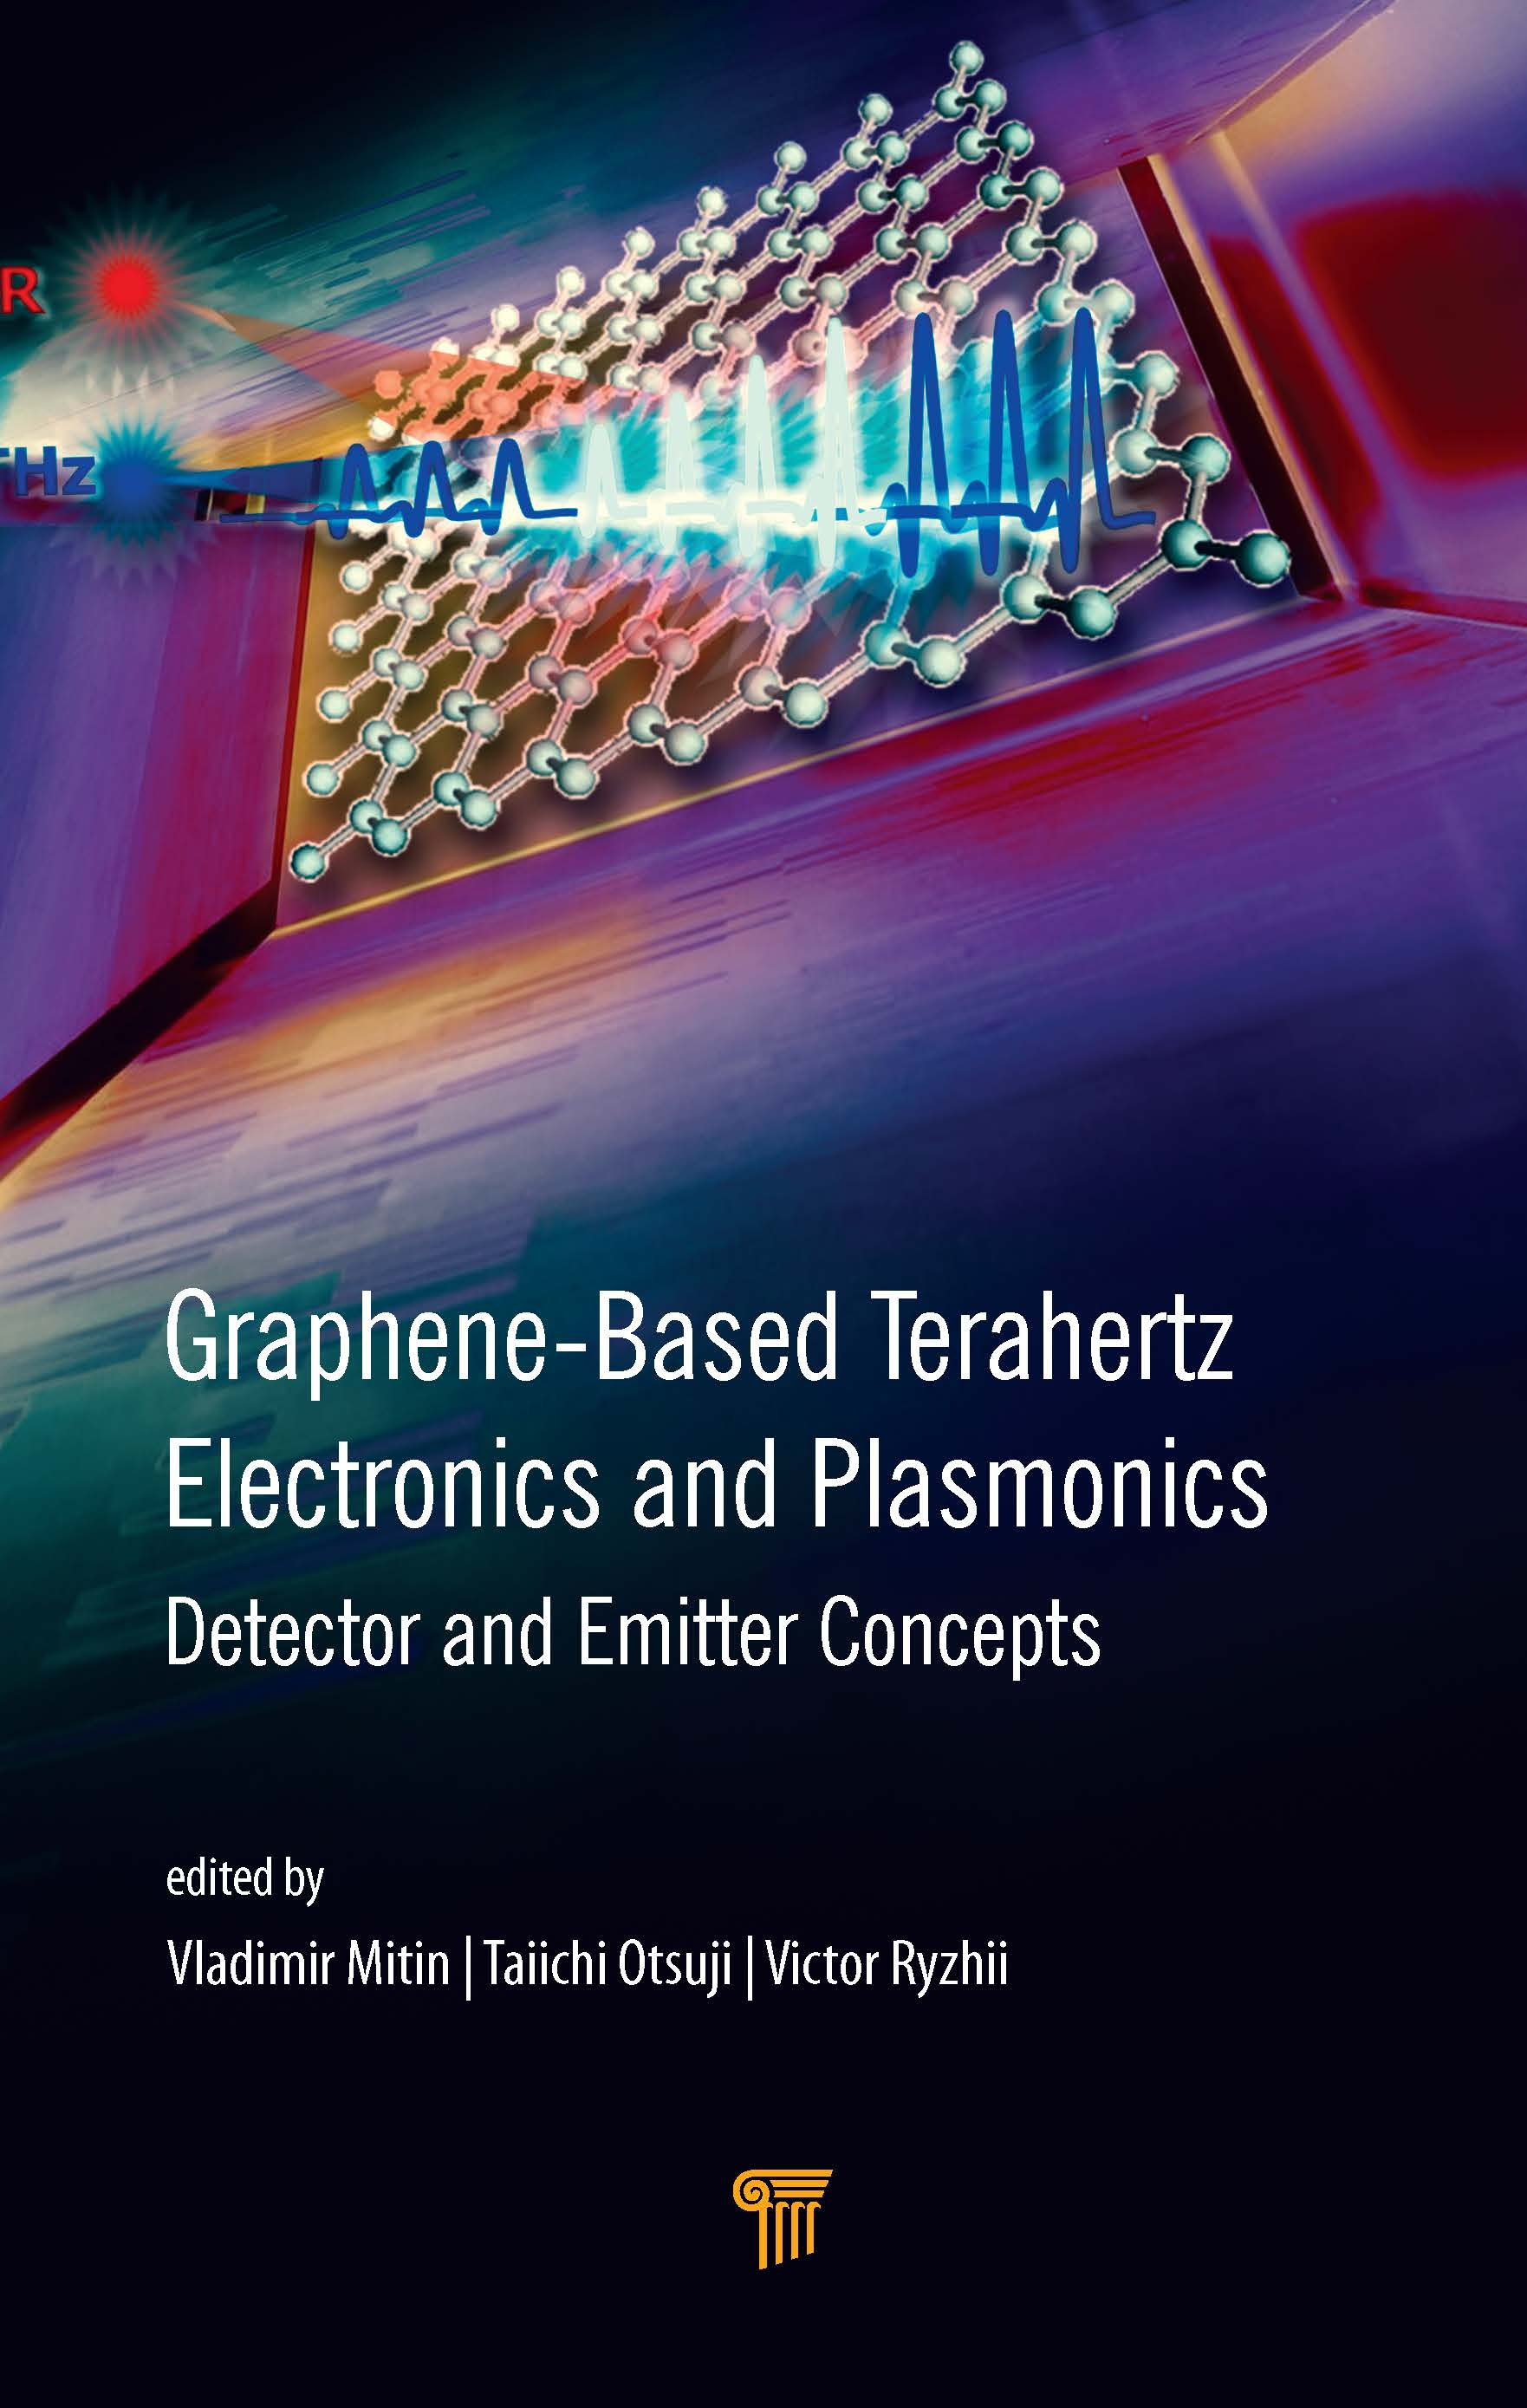 Graphene-Based Terahertz Electronics and Plasmonics: Detector and Emitter Concepts book cover